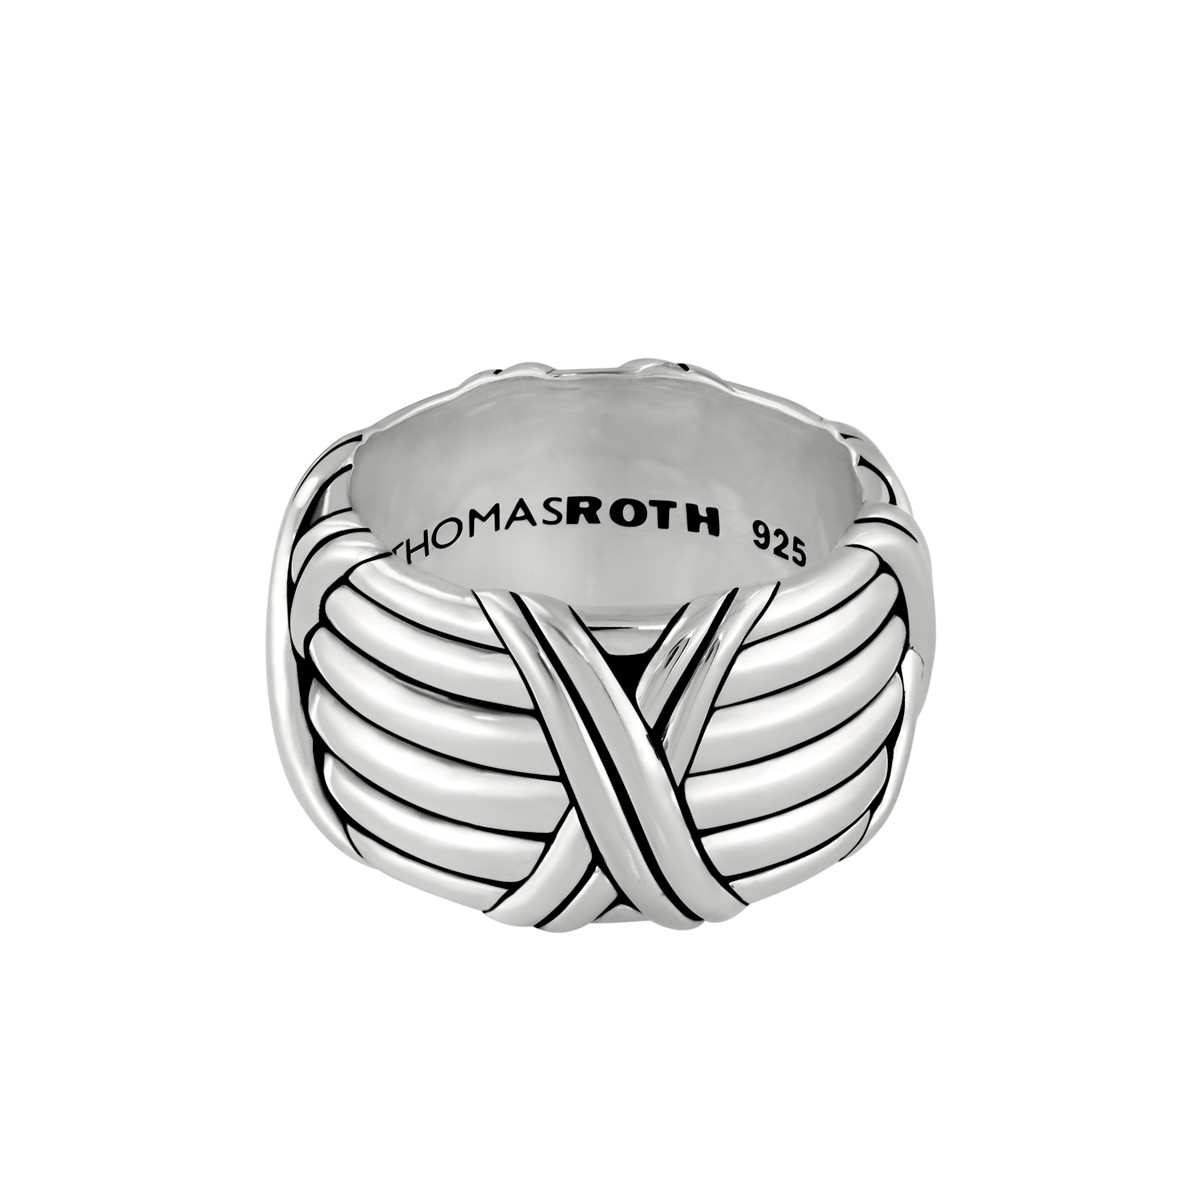 Signature Classic Kiss Wide Band Ring in sterling silver